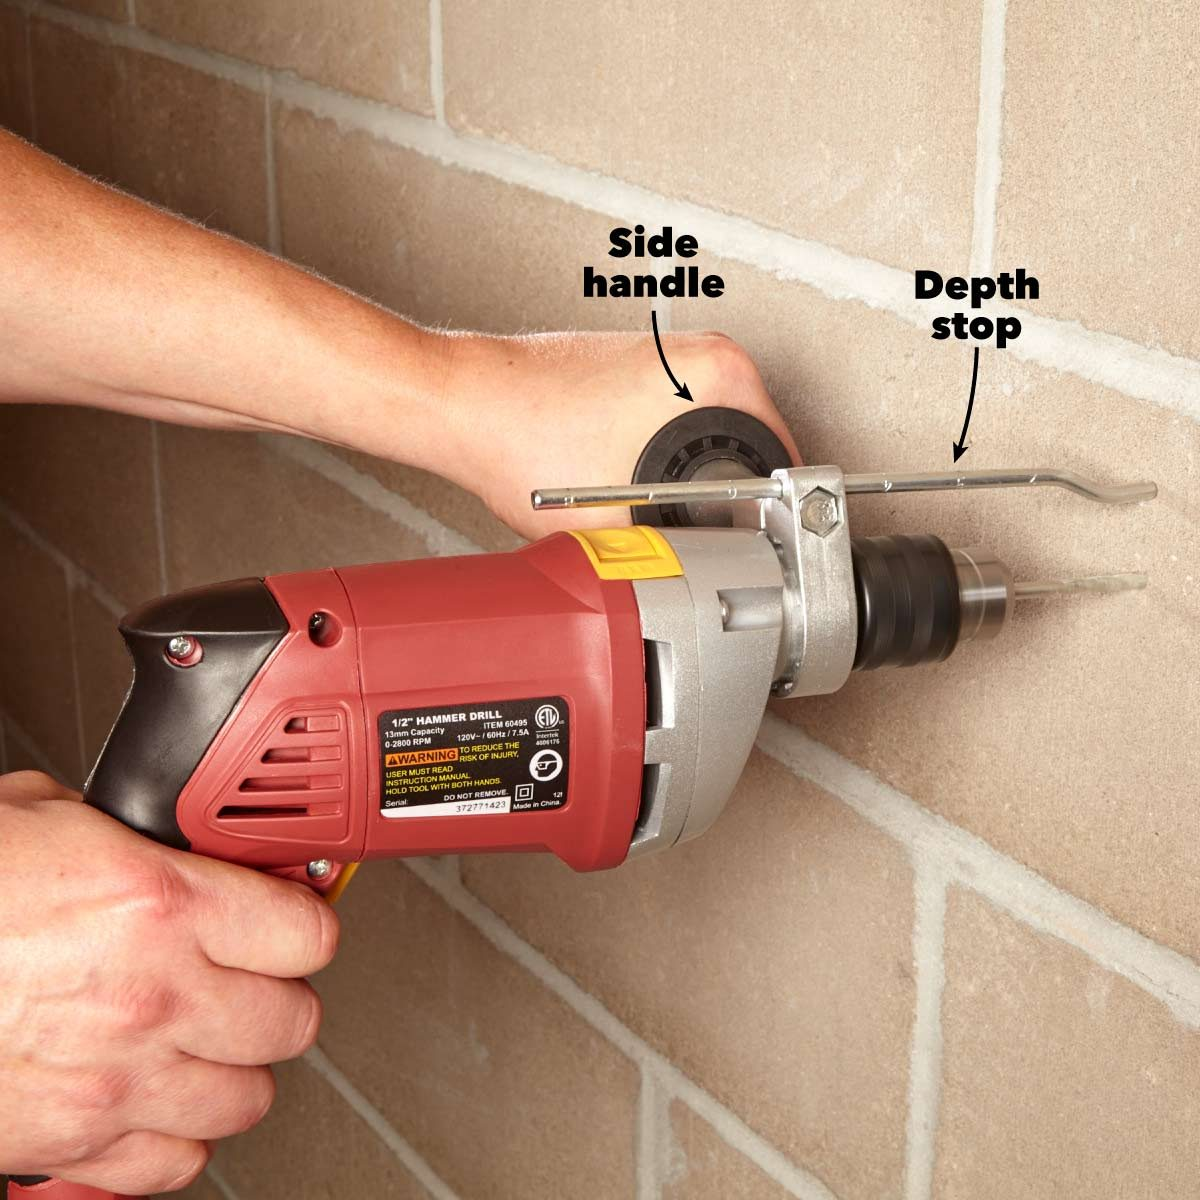 rotary vs hammer drills depth stop